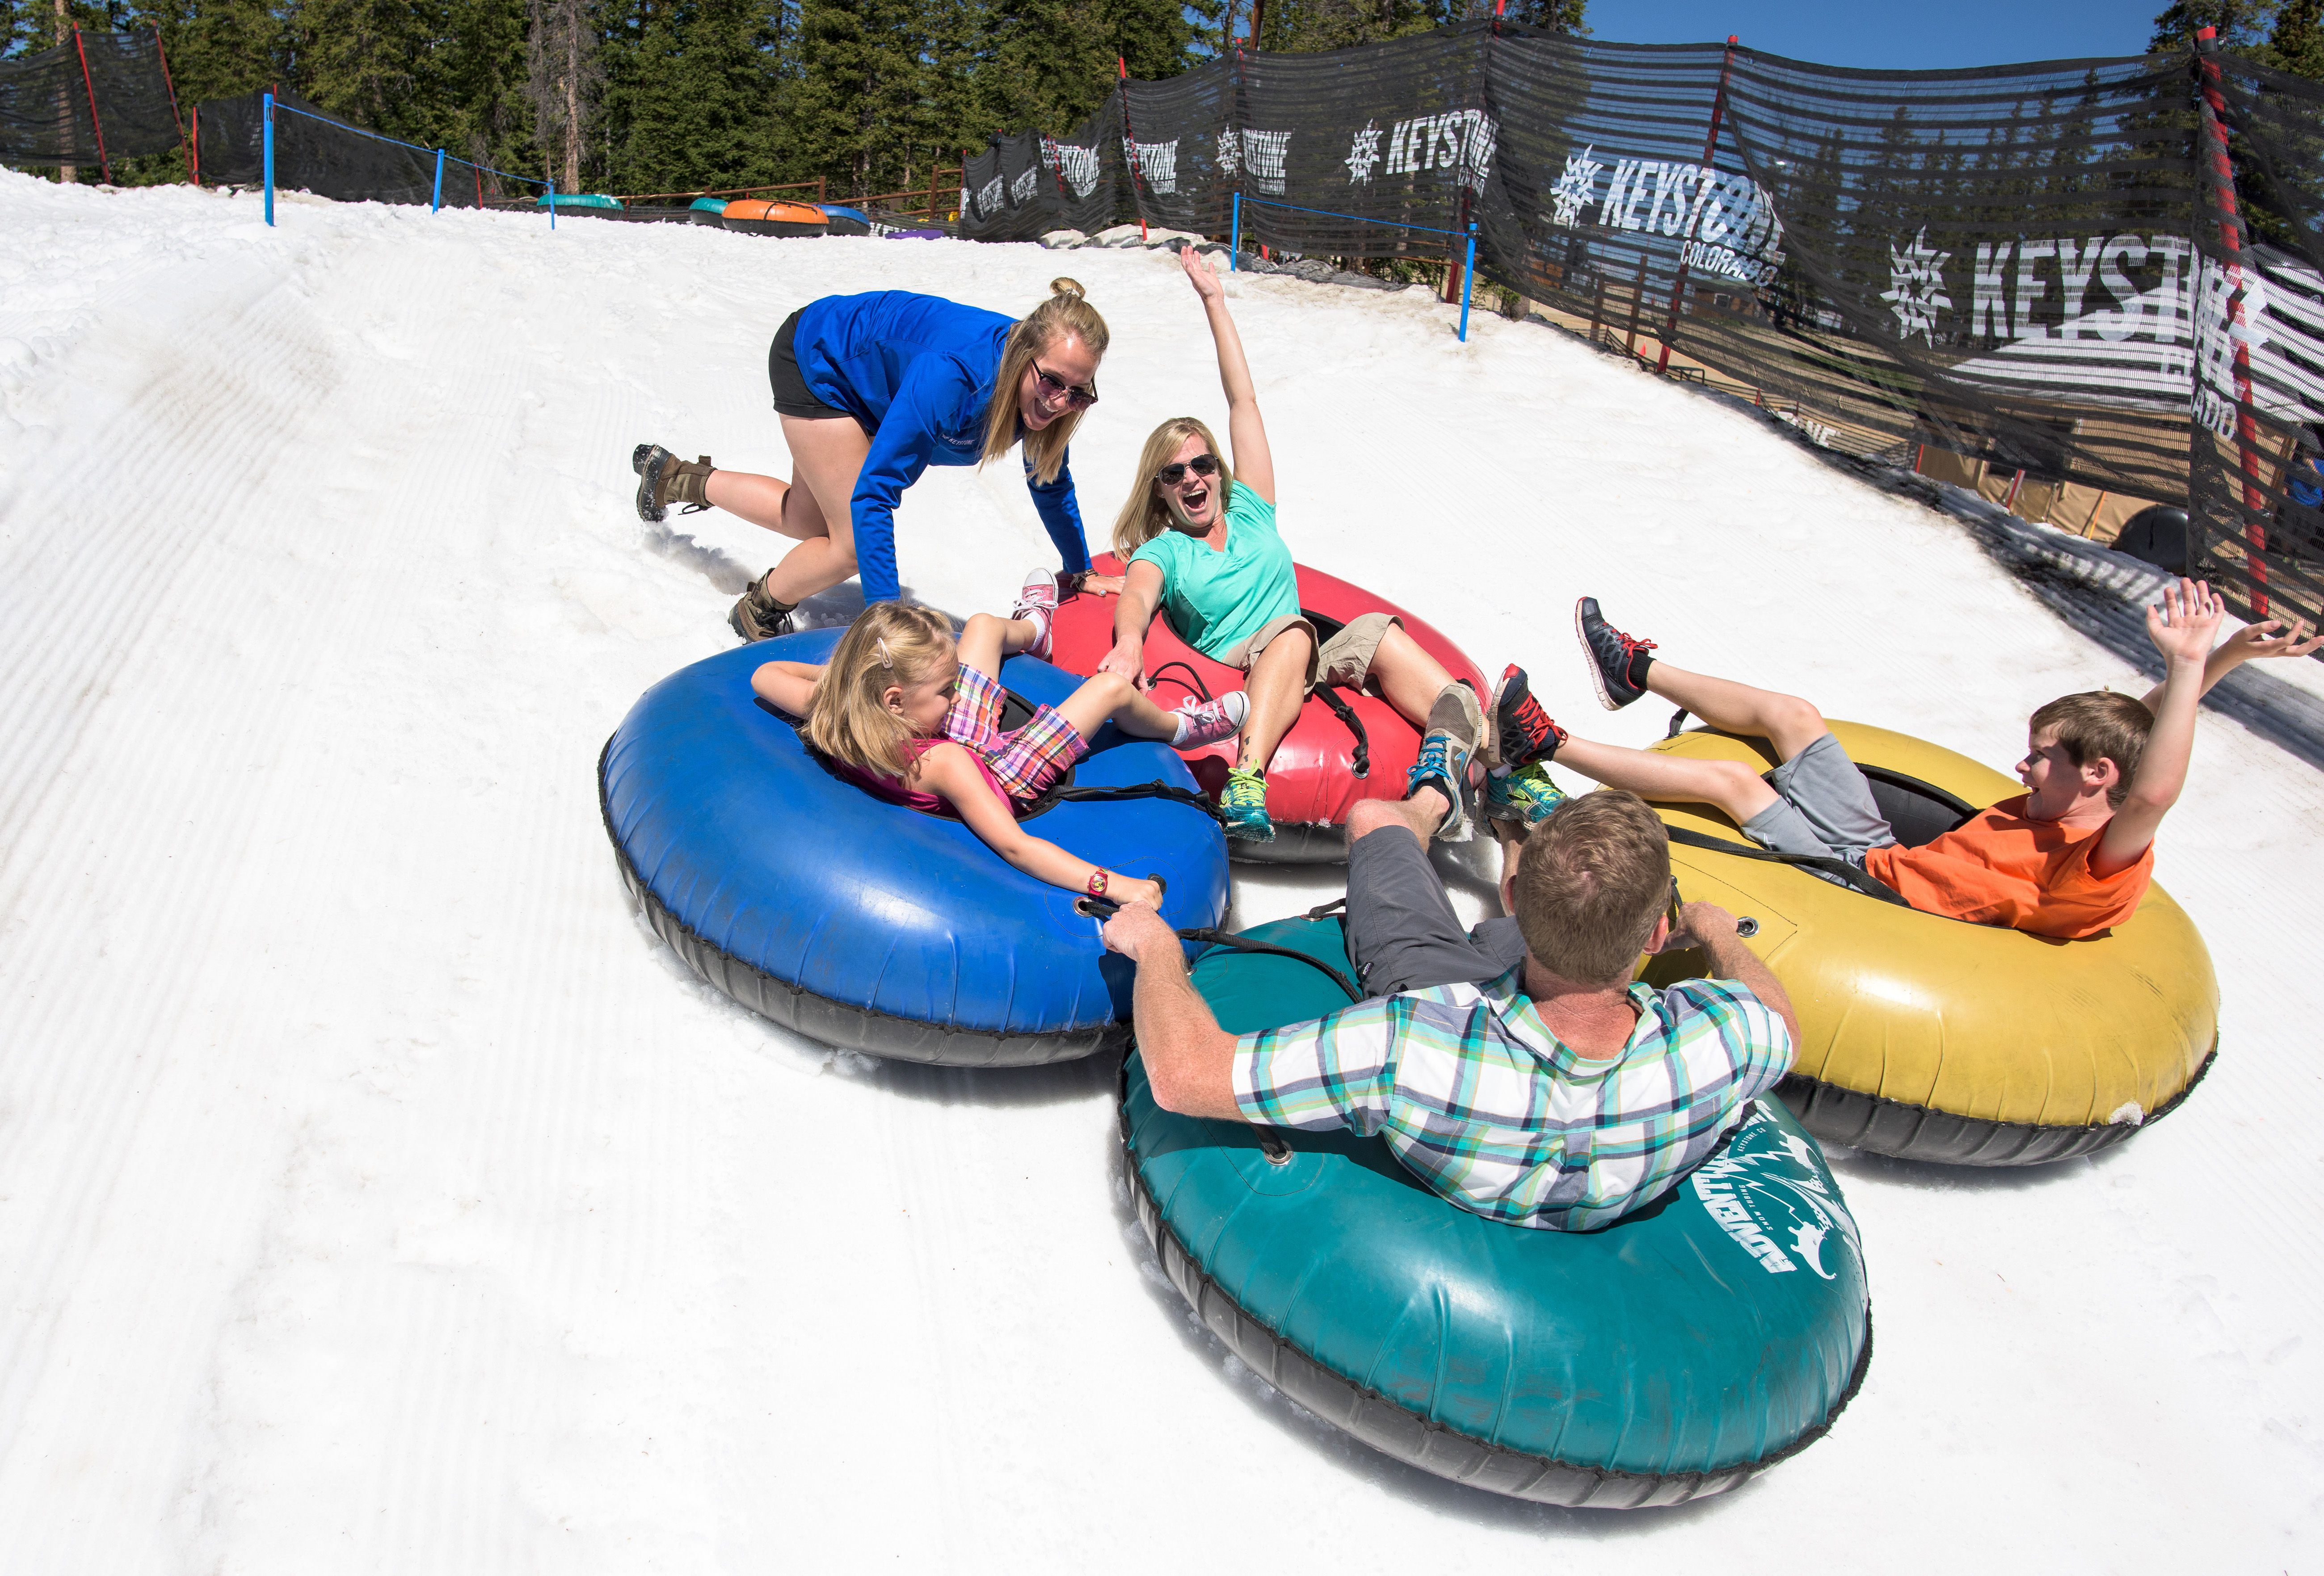 Snow tubing in the summer